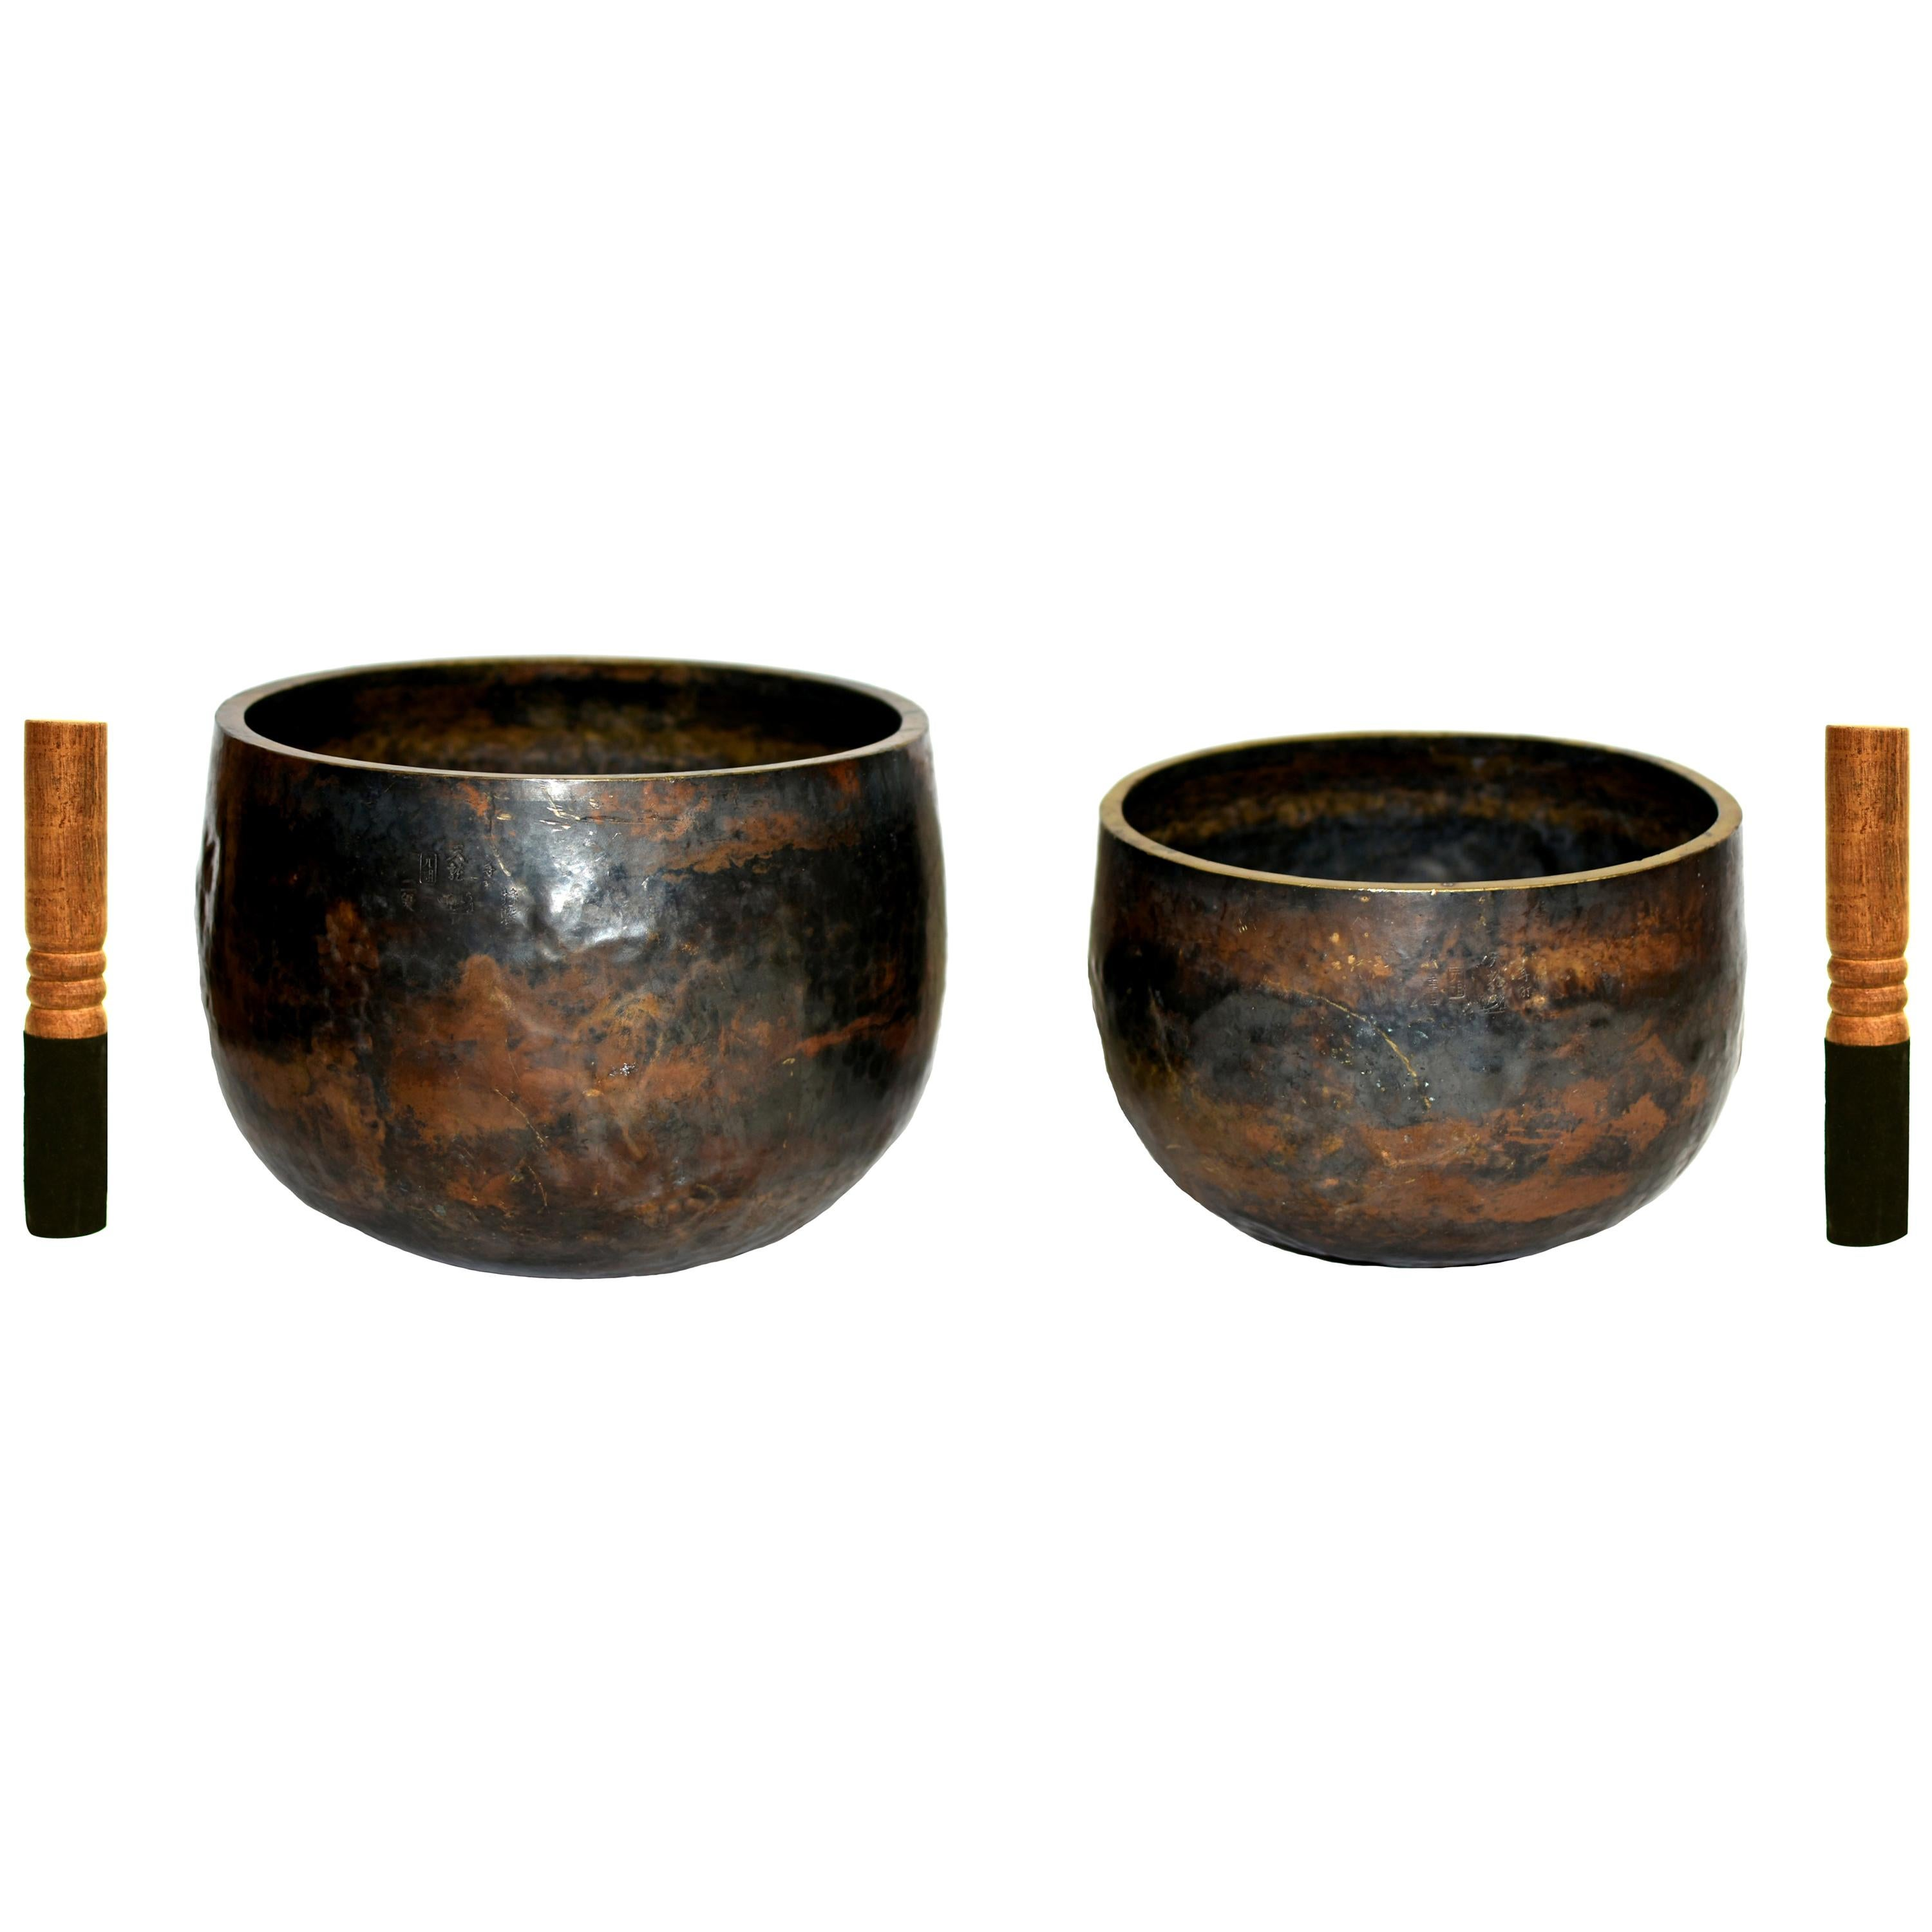 Japanese Antique Singing Bowls Special Edition Signed and Marked